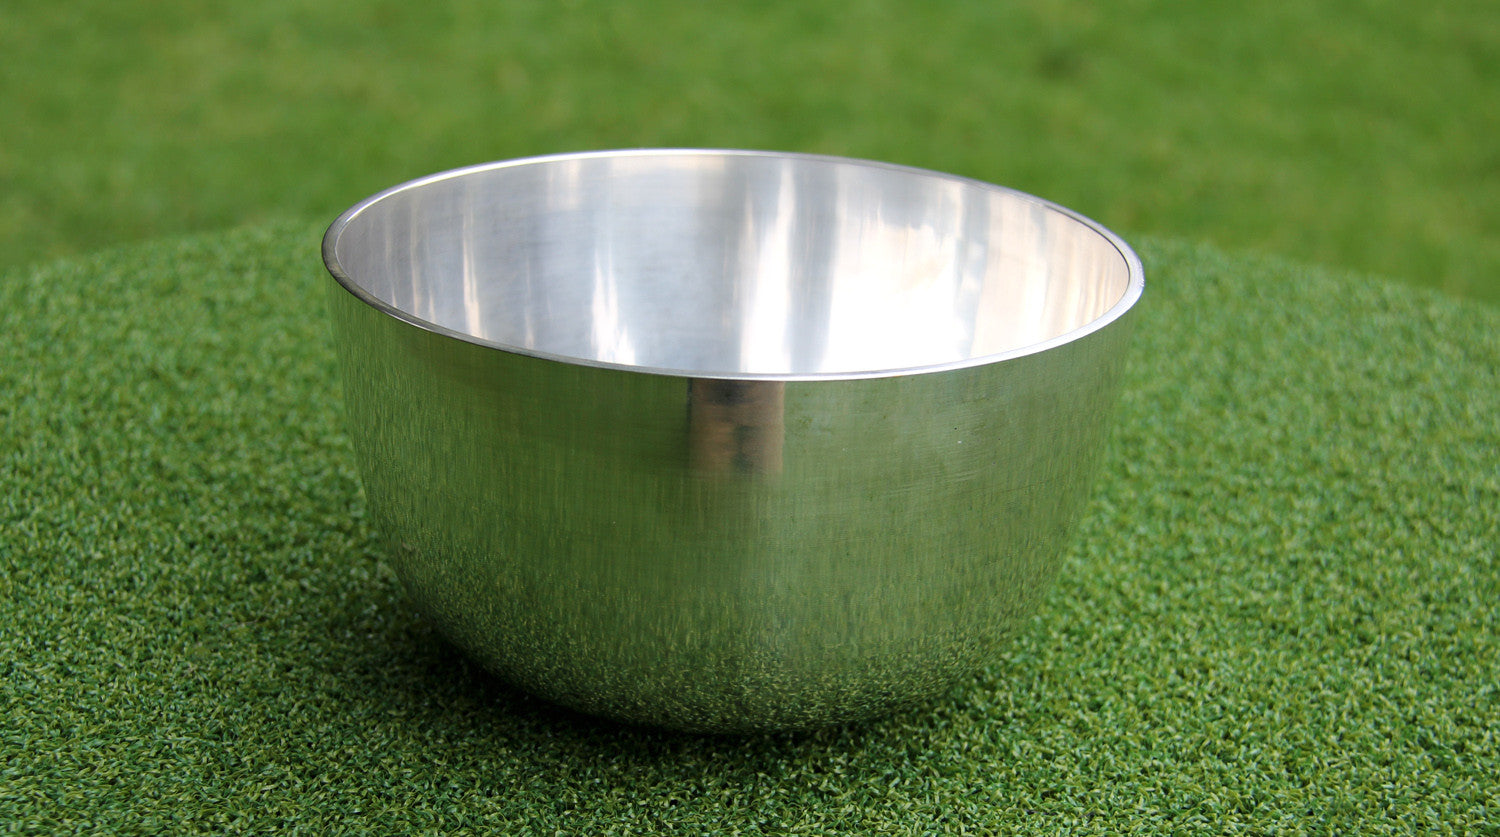 Deep Singbowl - Plain Silver - For Space Clearing - Singbowls